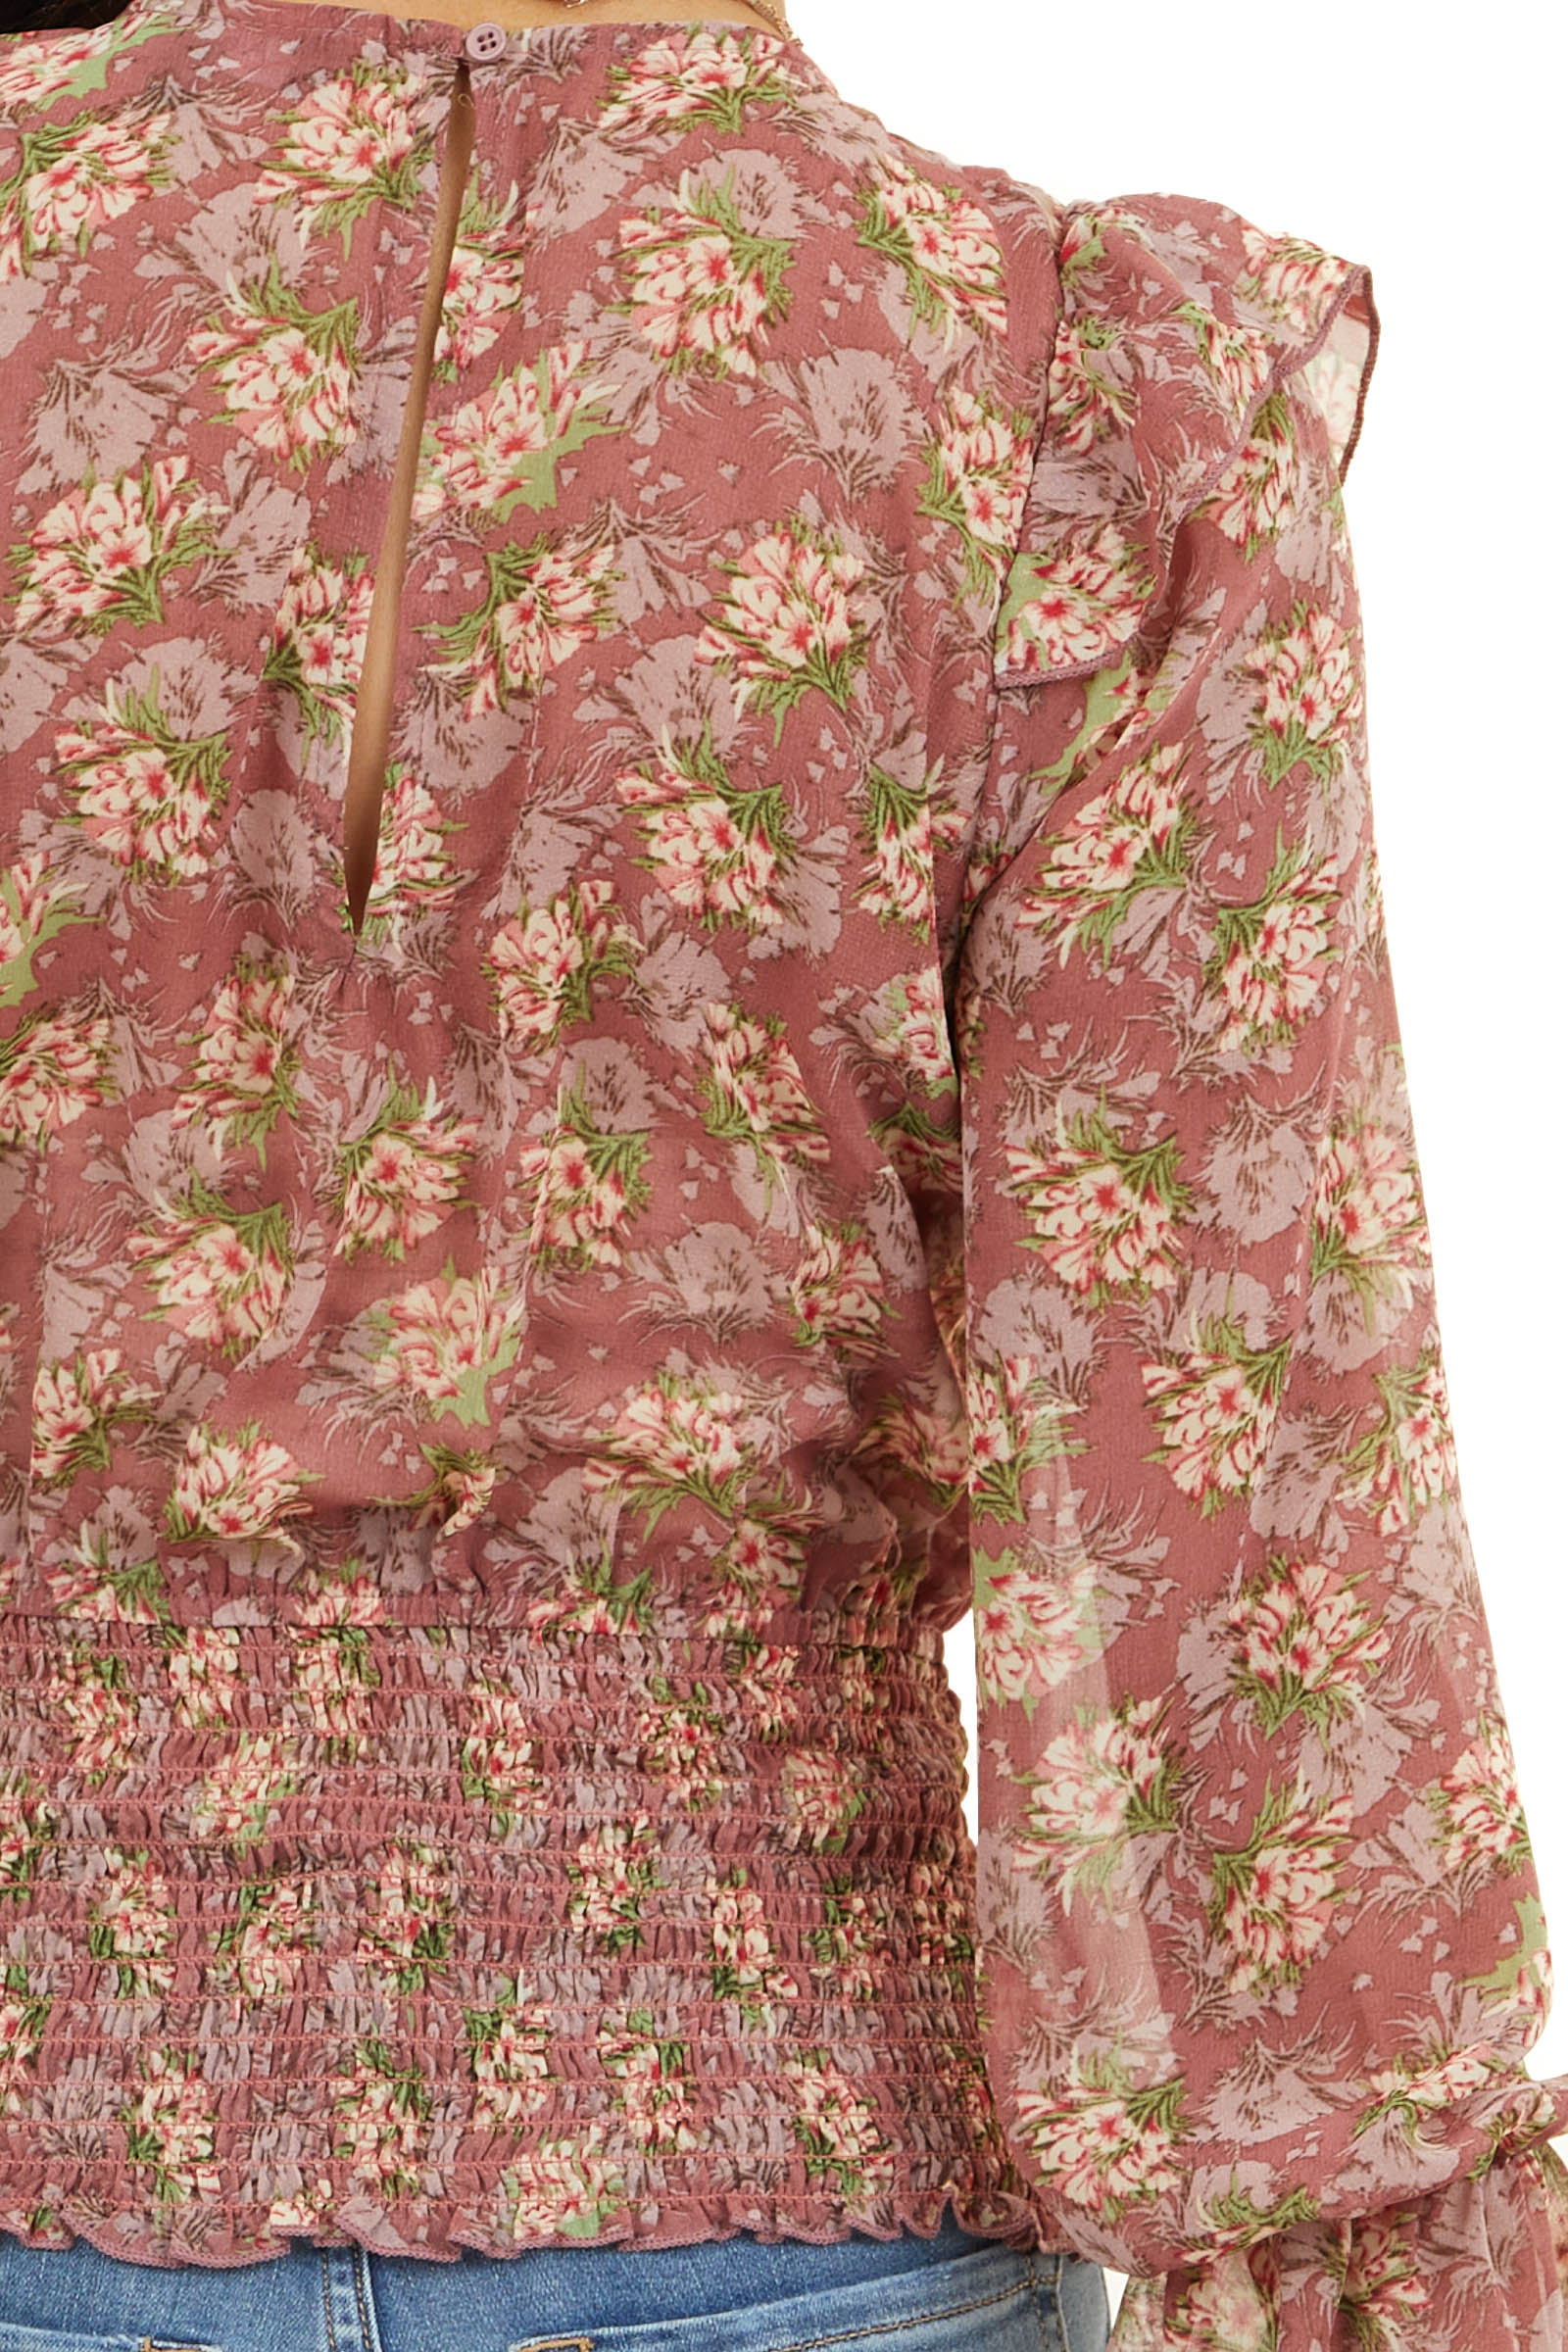 Vintage Rose Floral Print Top with Ruffles and Smocked Hem